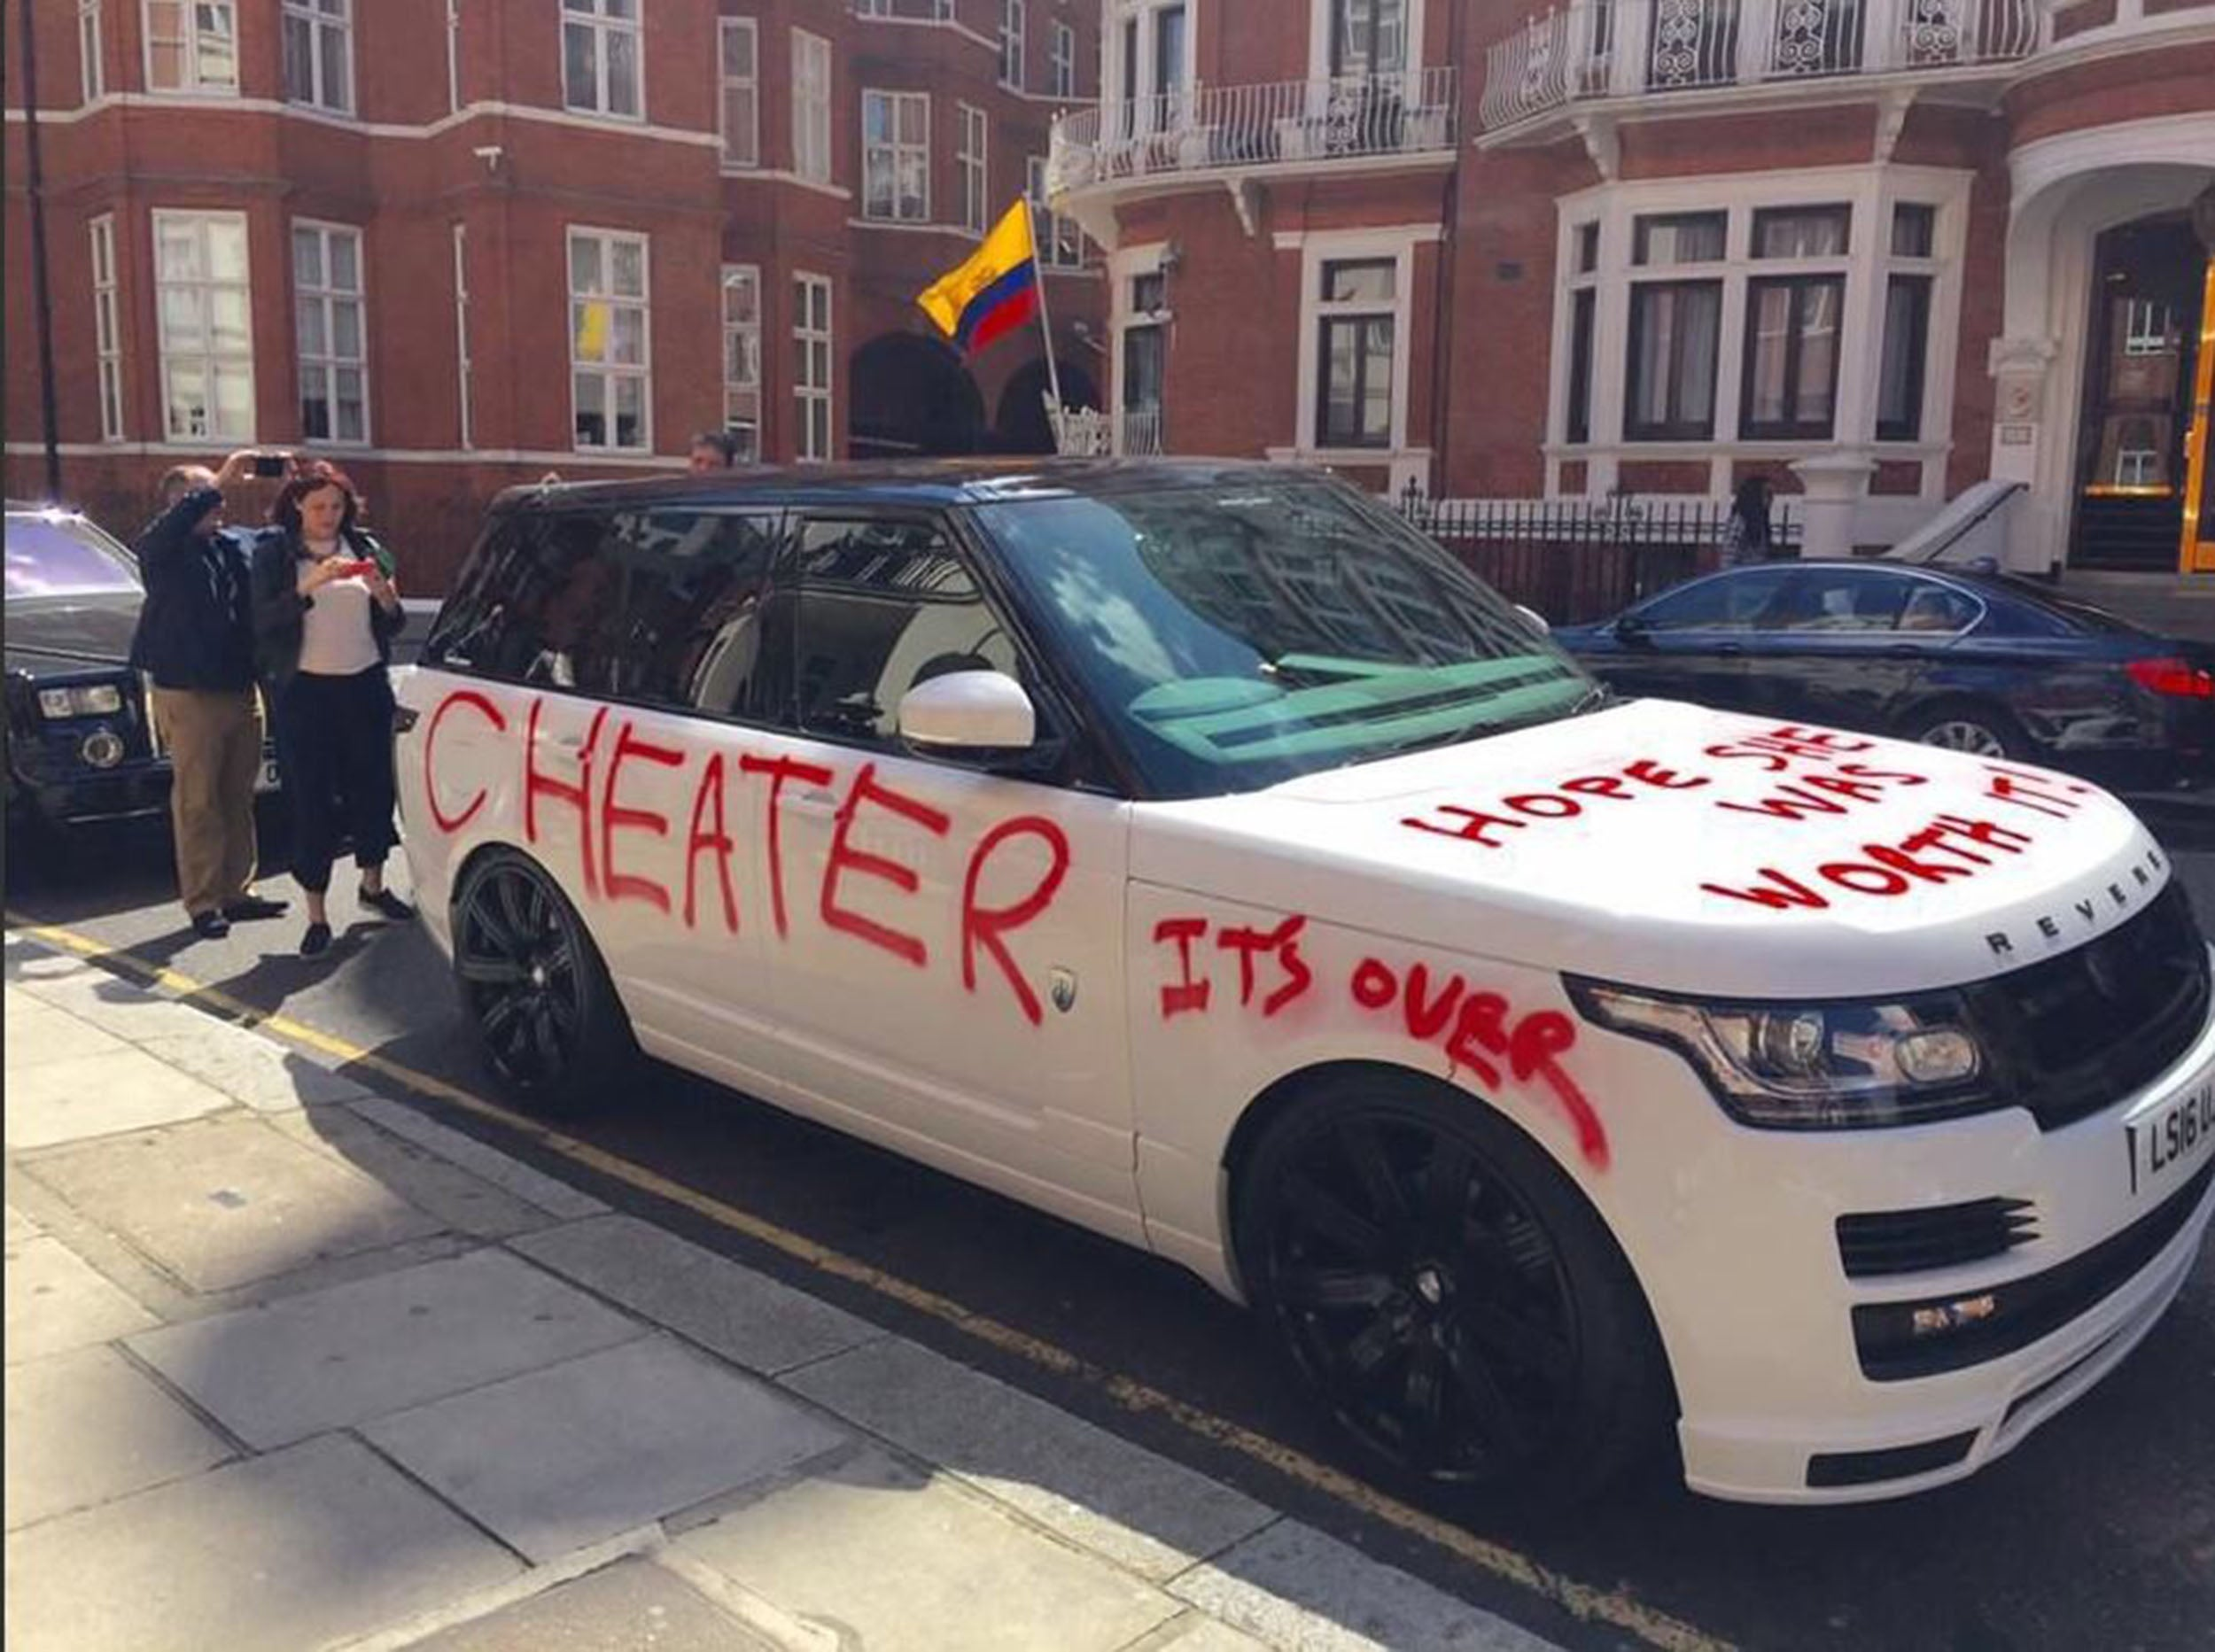 cheater 39 car outside harrods is probably a publicity stunt uk. Black Bedroom Furniture Sets. Home Design Ideas